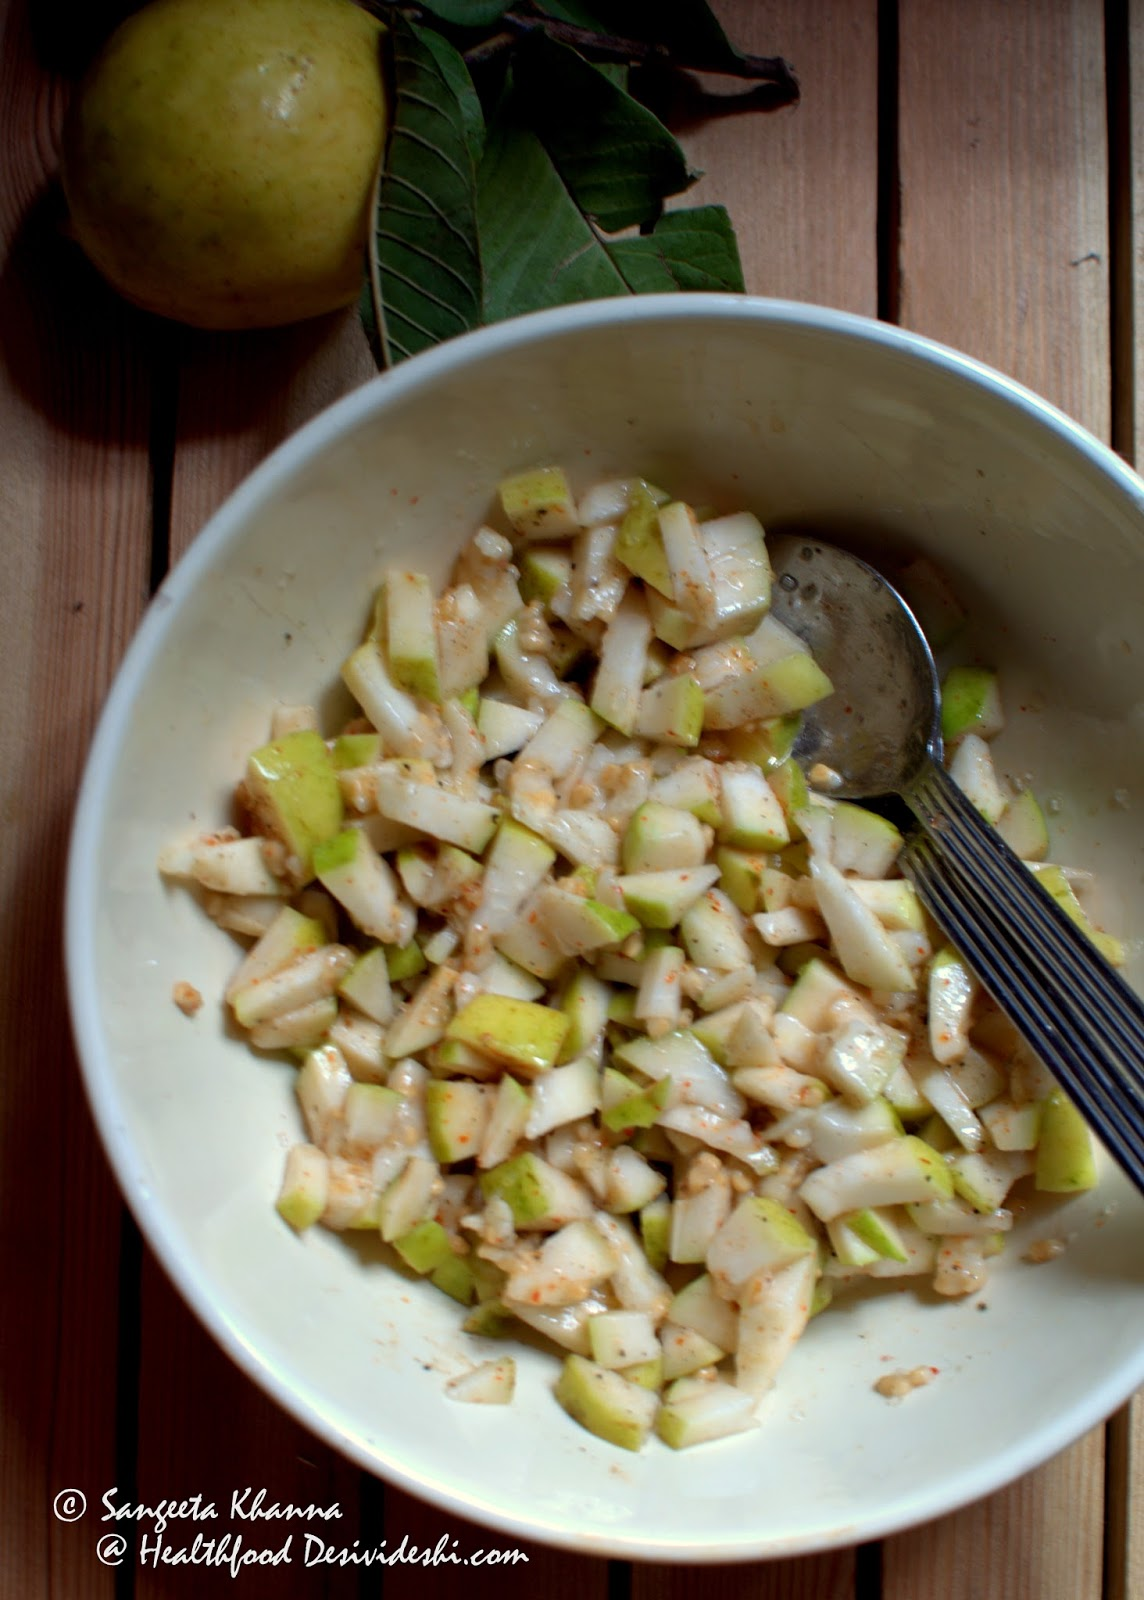 Ripe Guava Can Be Cooked Either By Roasting, Boiling Or Grilling And Be  Made Into